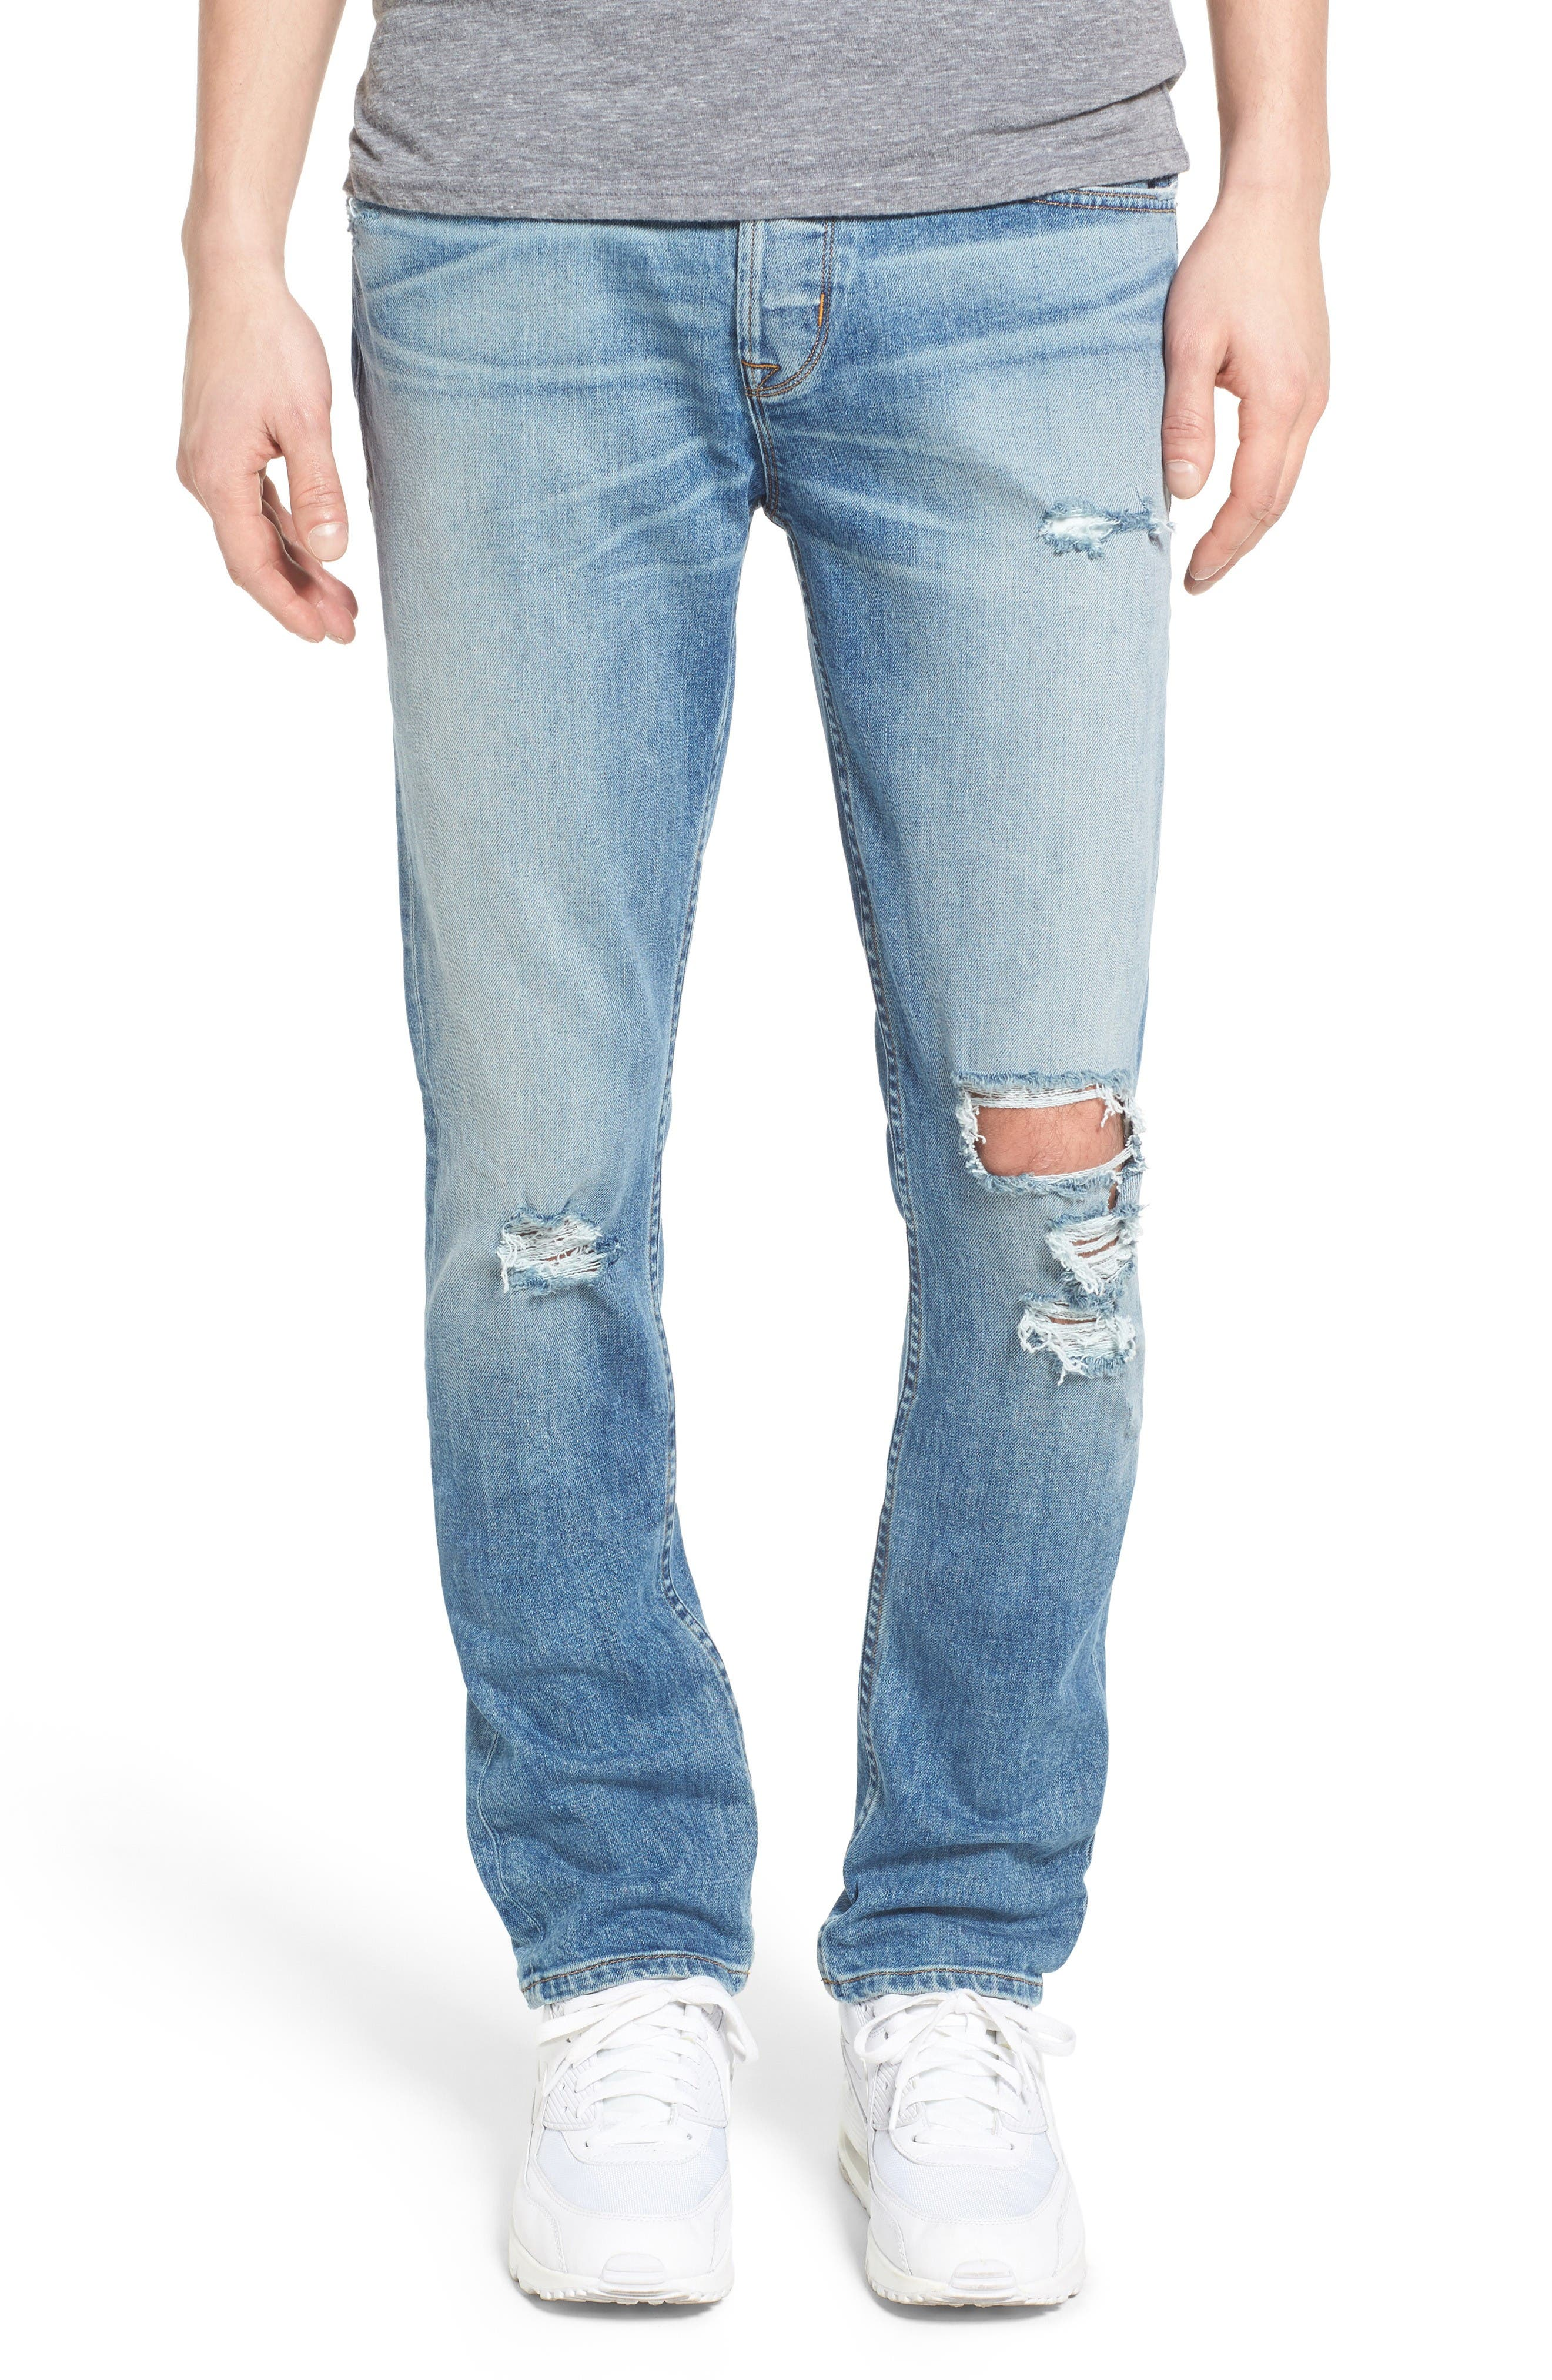 Sator Skinny Fit Jeans,                             Main thumbnail 1, color,                             Banned